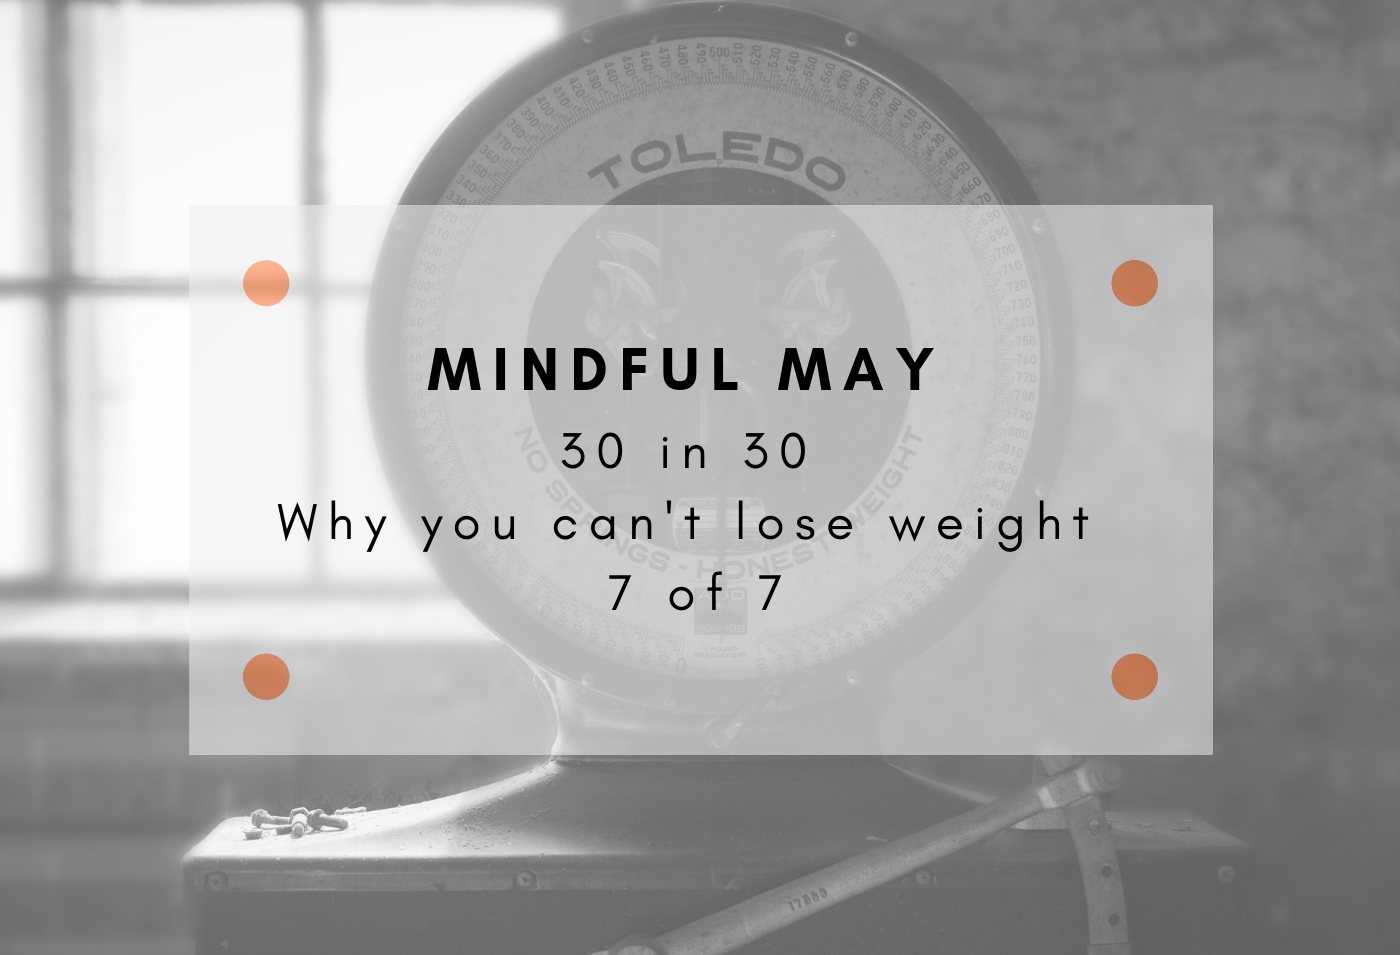 why you can't lose weight: 7 of 7